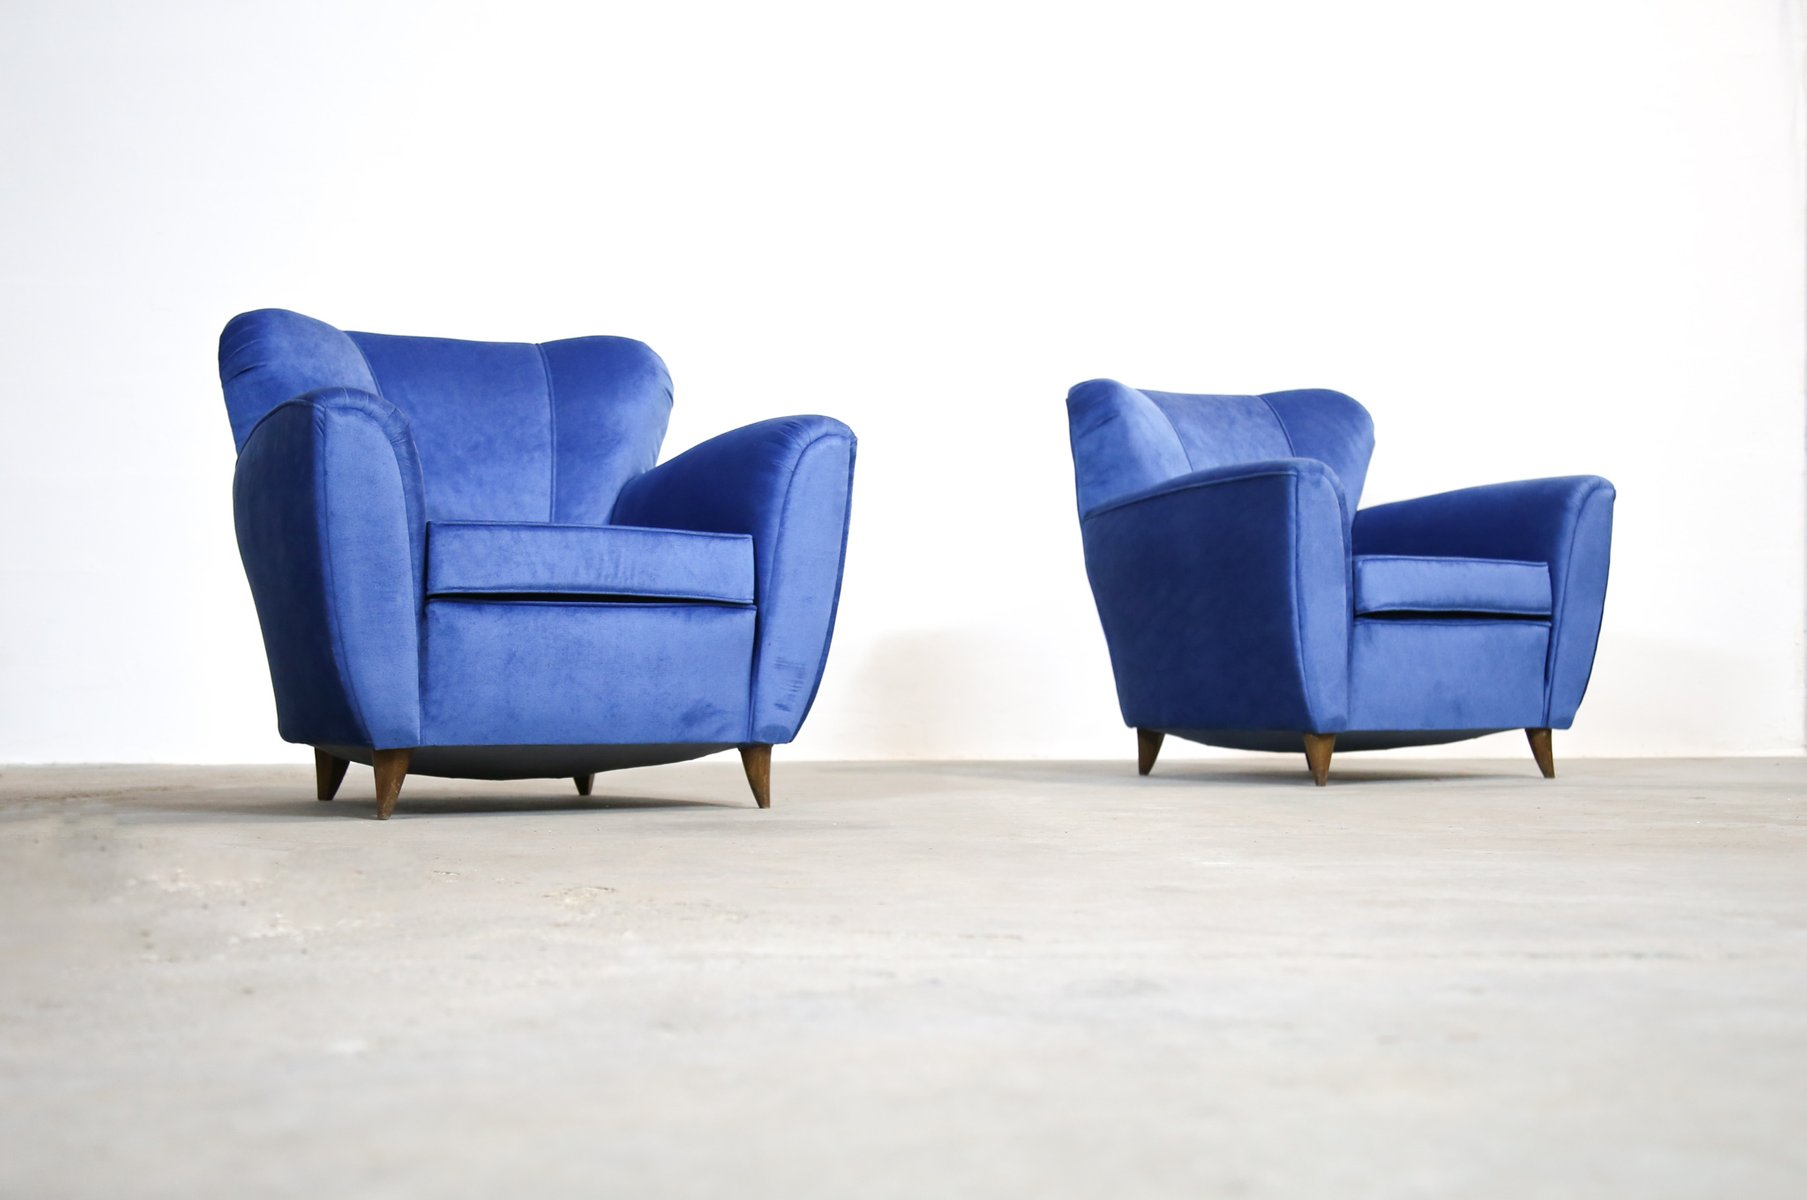 vintage italian blue armchairs 1960s set of 2 for sale at pamono. Black Bedroom Furniture Sets. Home Design Ideas